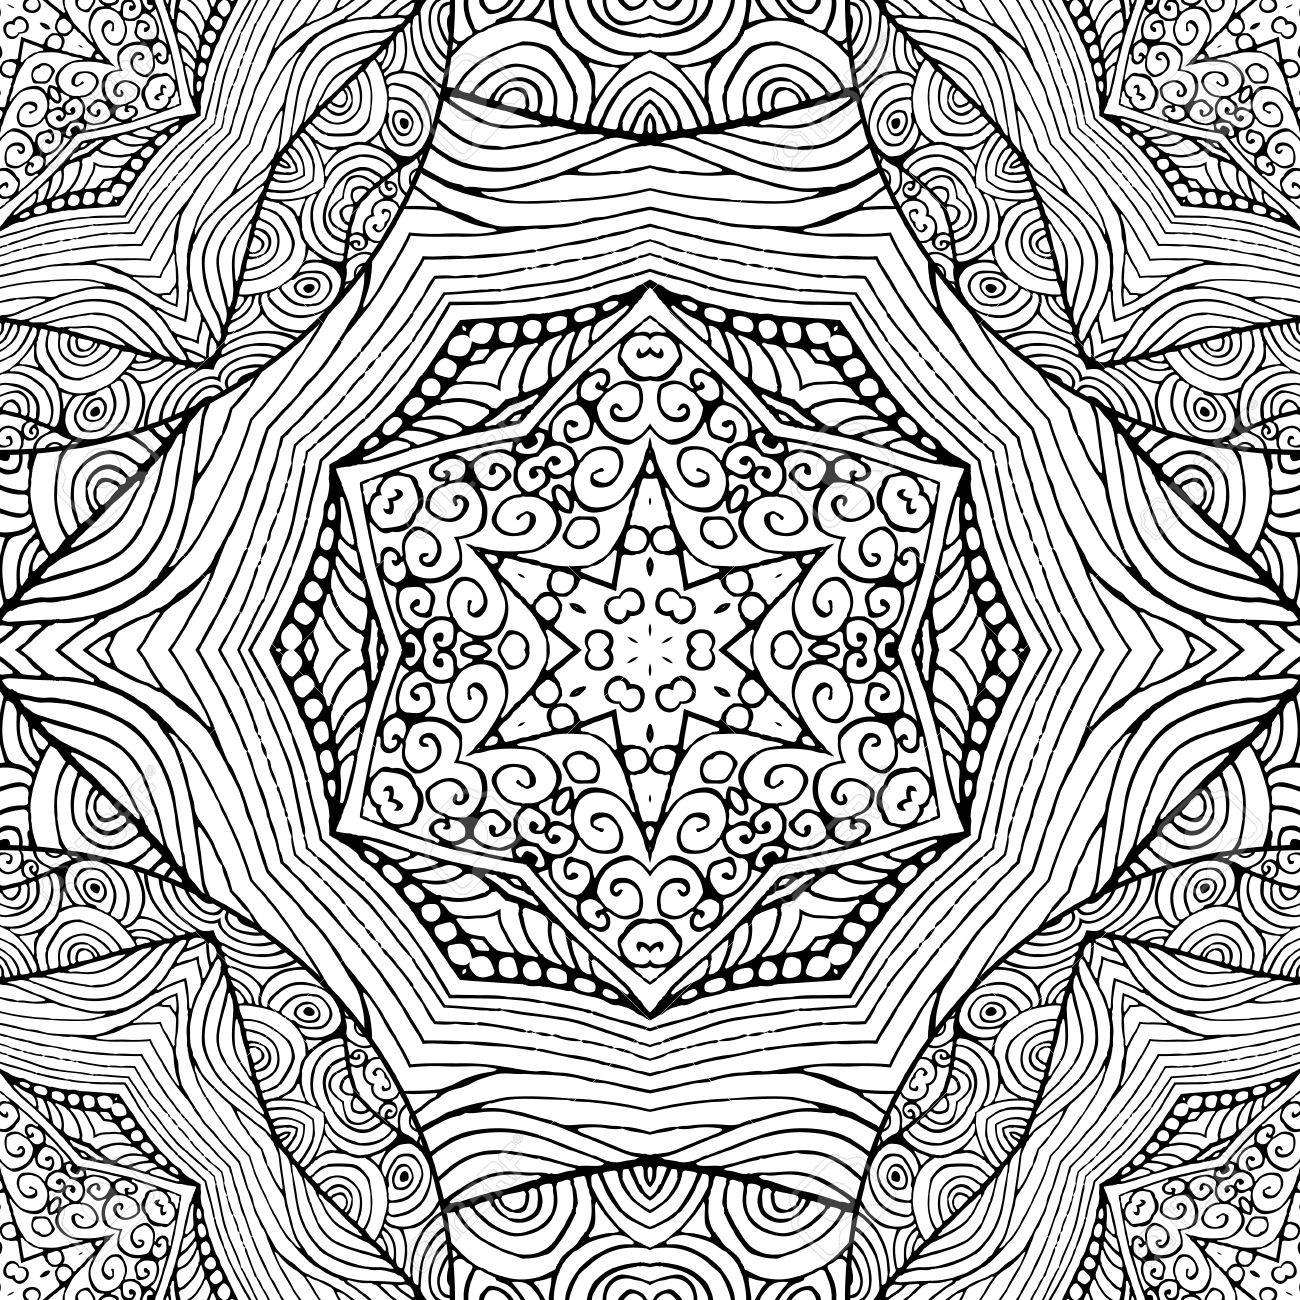 Coloring Book Page Design With Pattern Mandala Ethnic Ornament Isolated Vector Illustration In Doodle